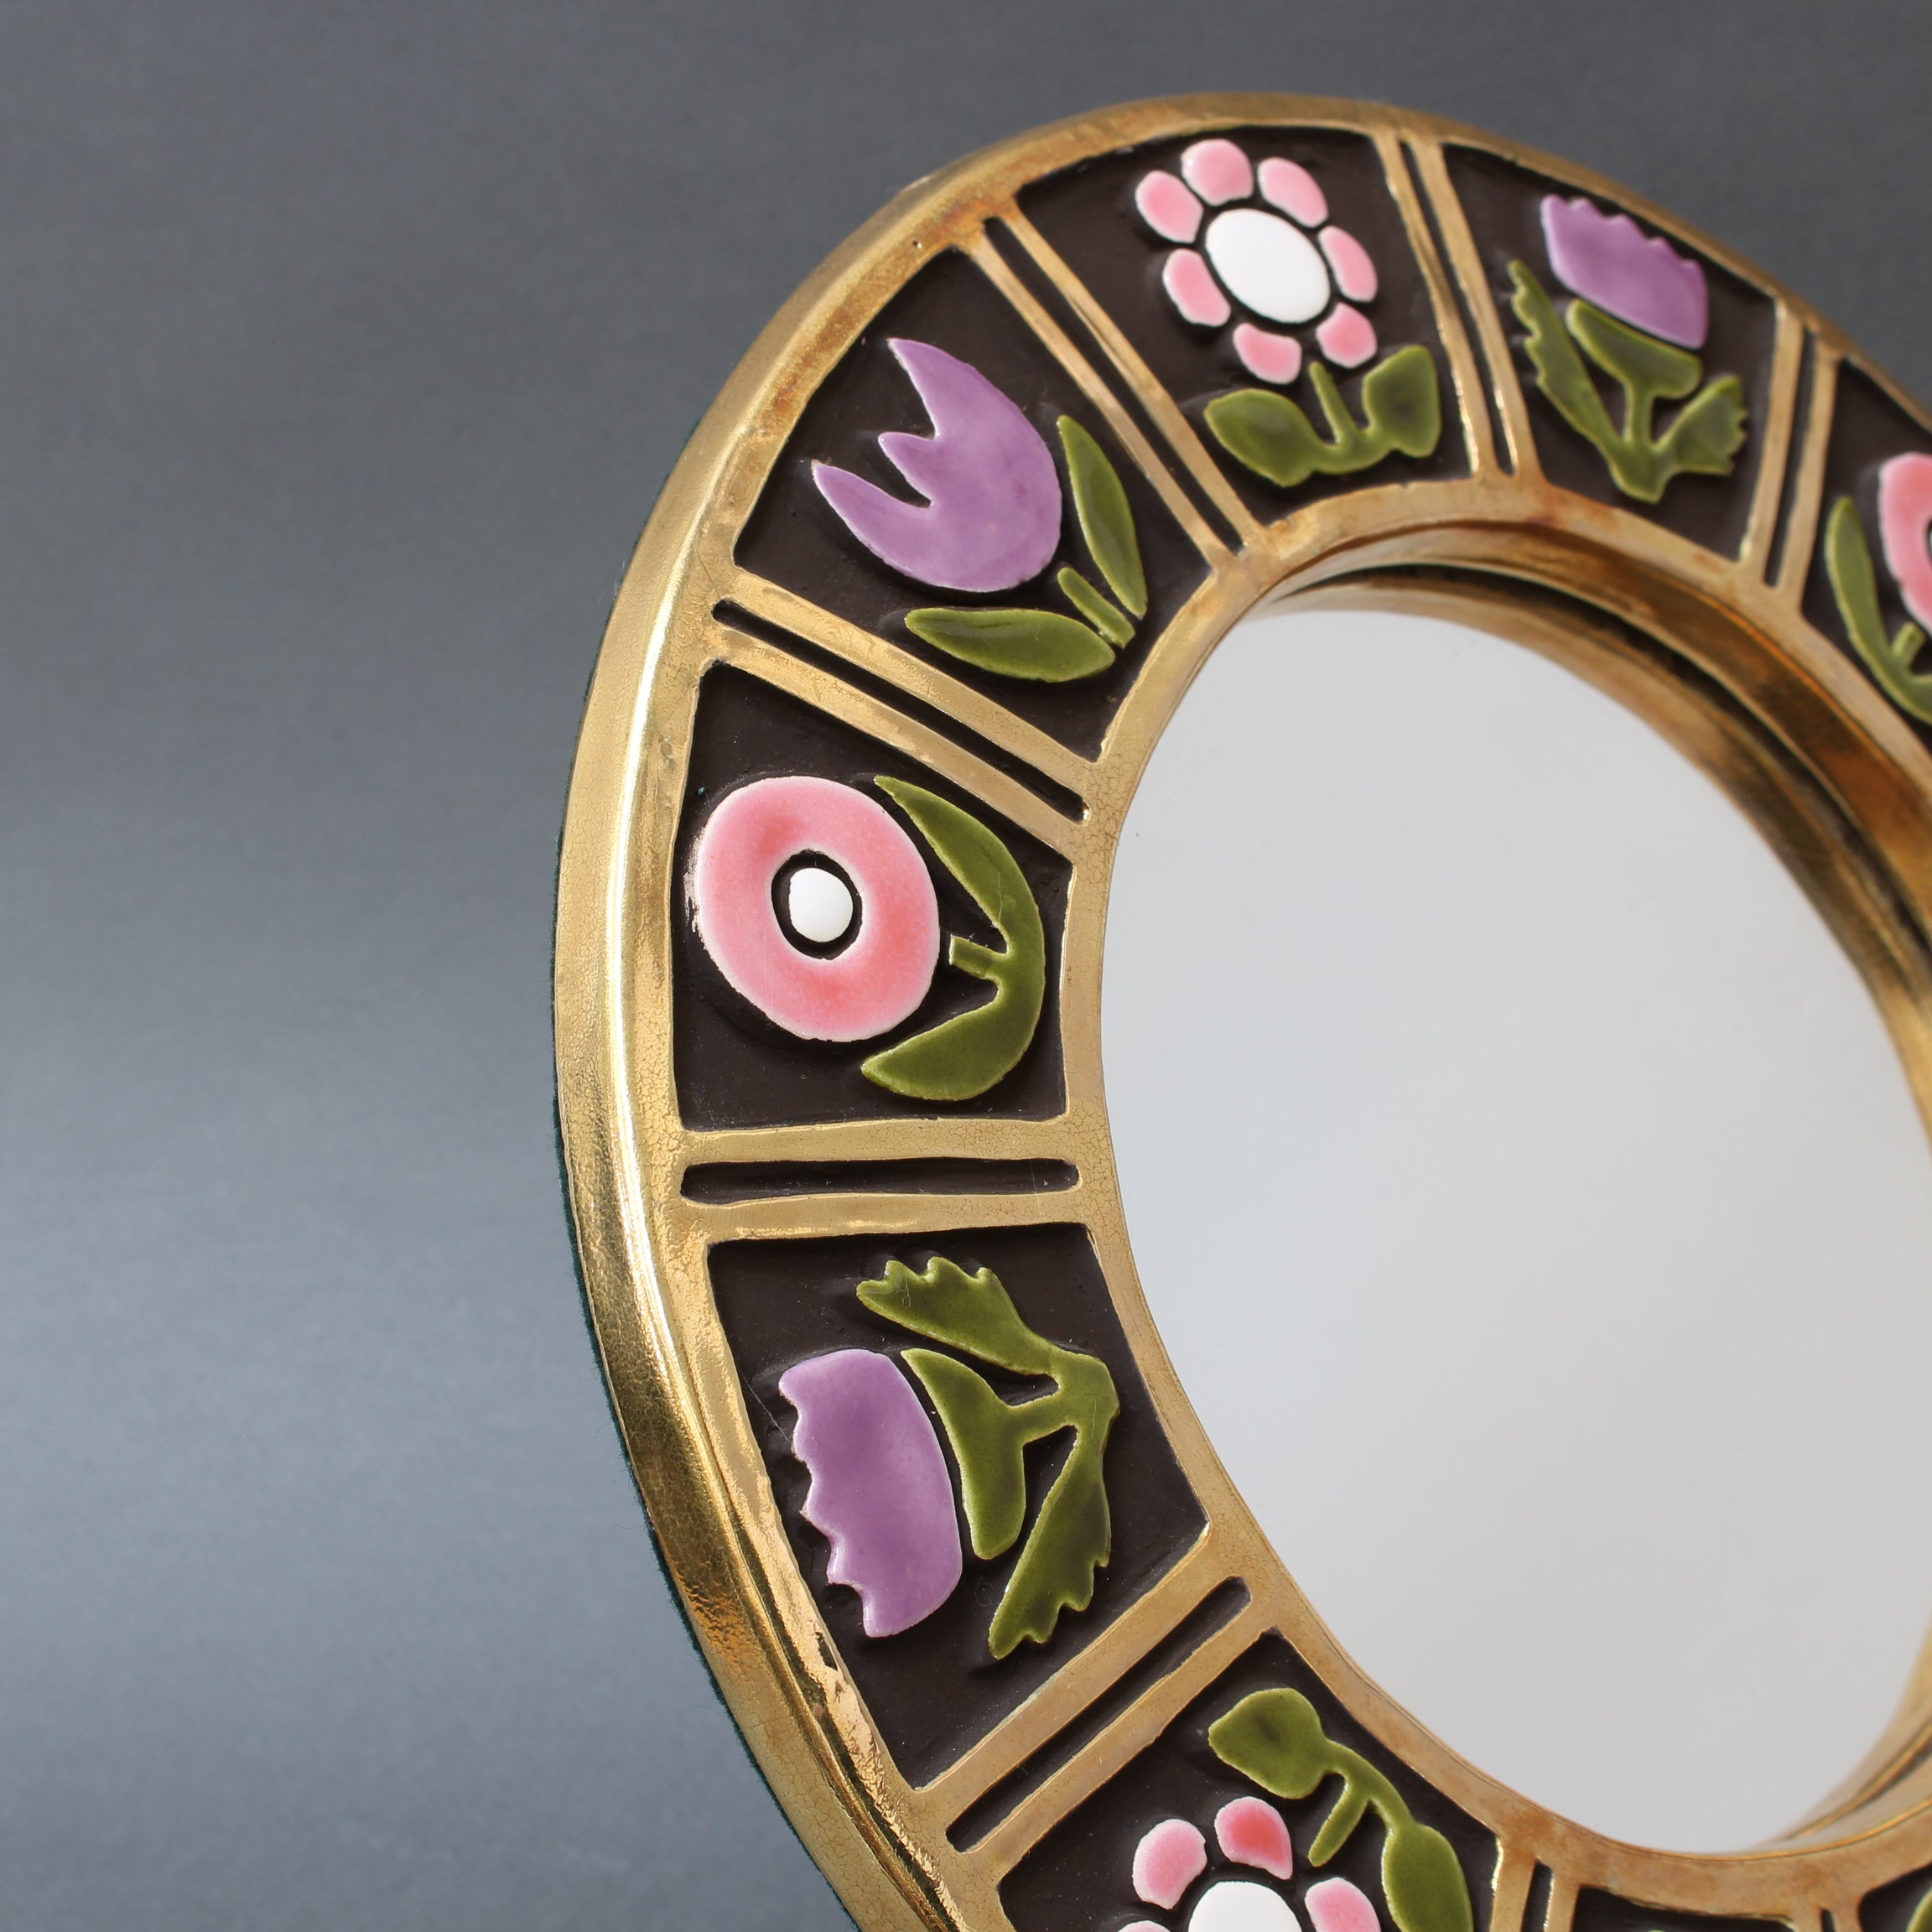 Ceramic Wall Mirror with Flower Motif by François Lembo (circa 1960s)